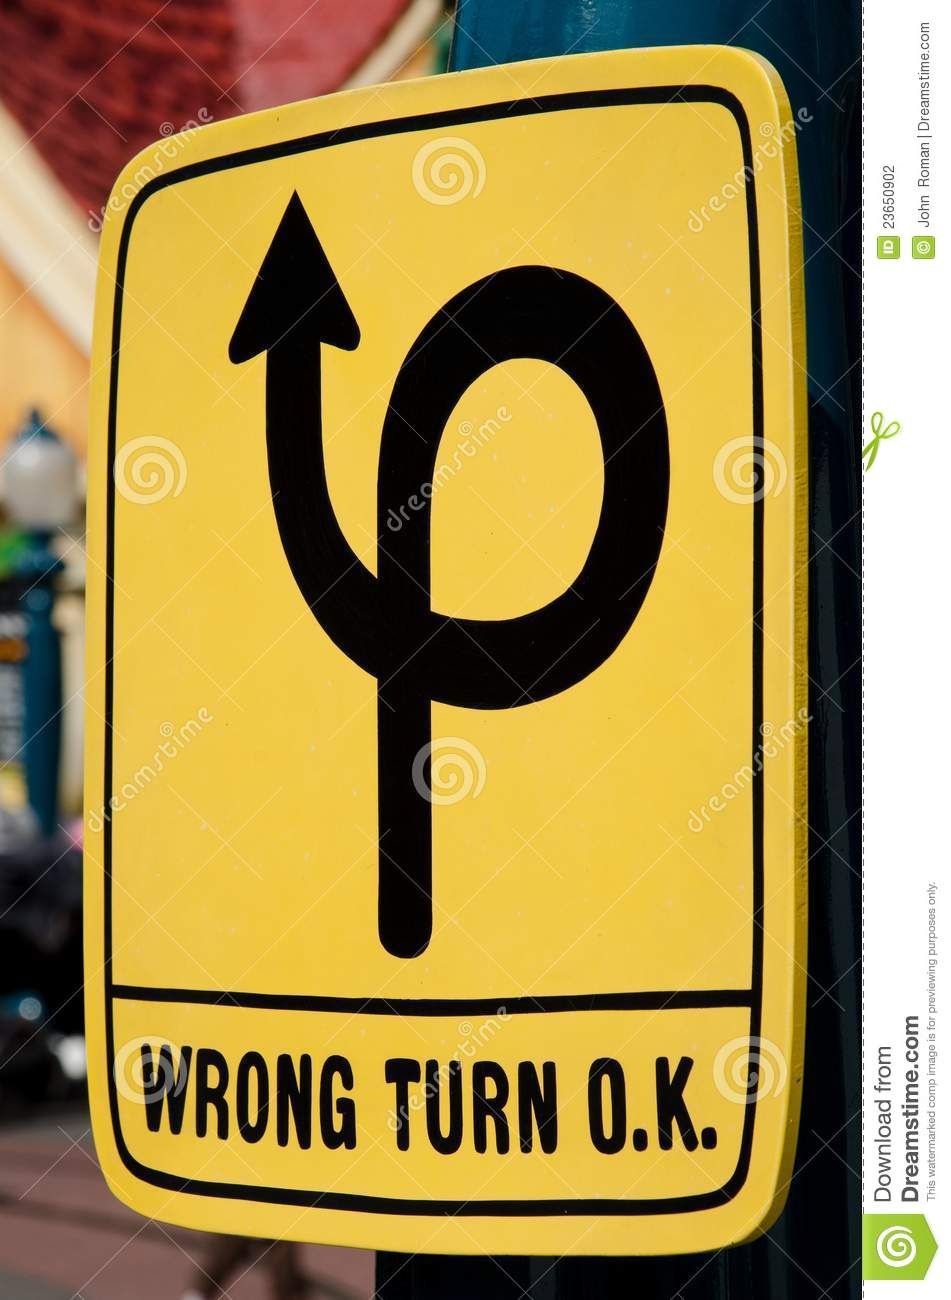 Image result for wrong turning